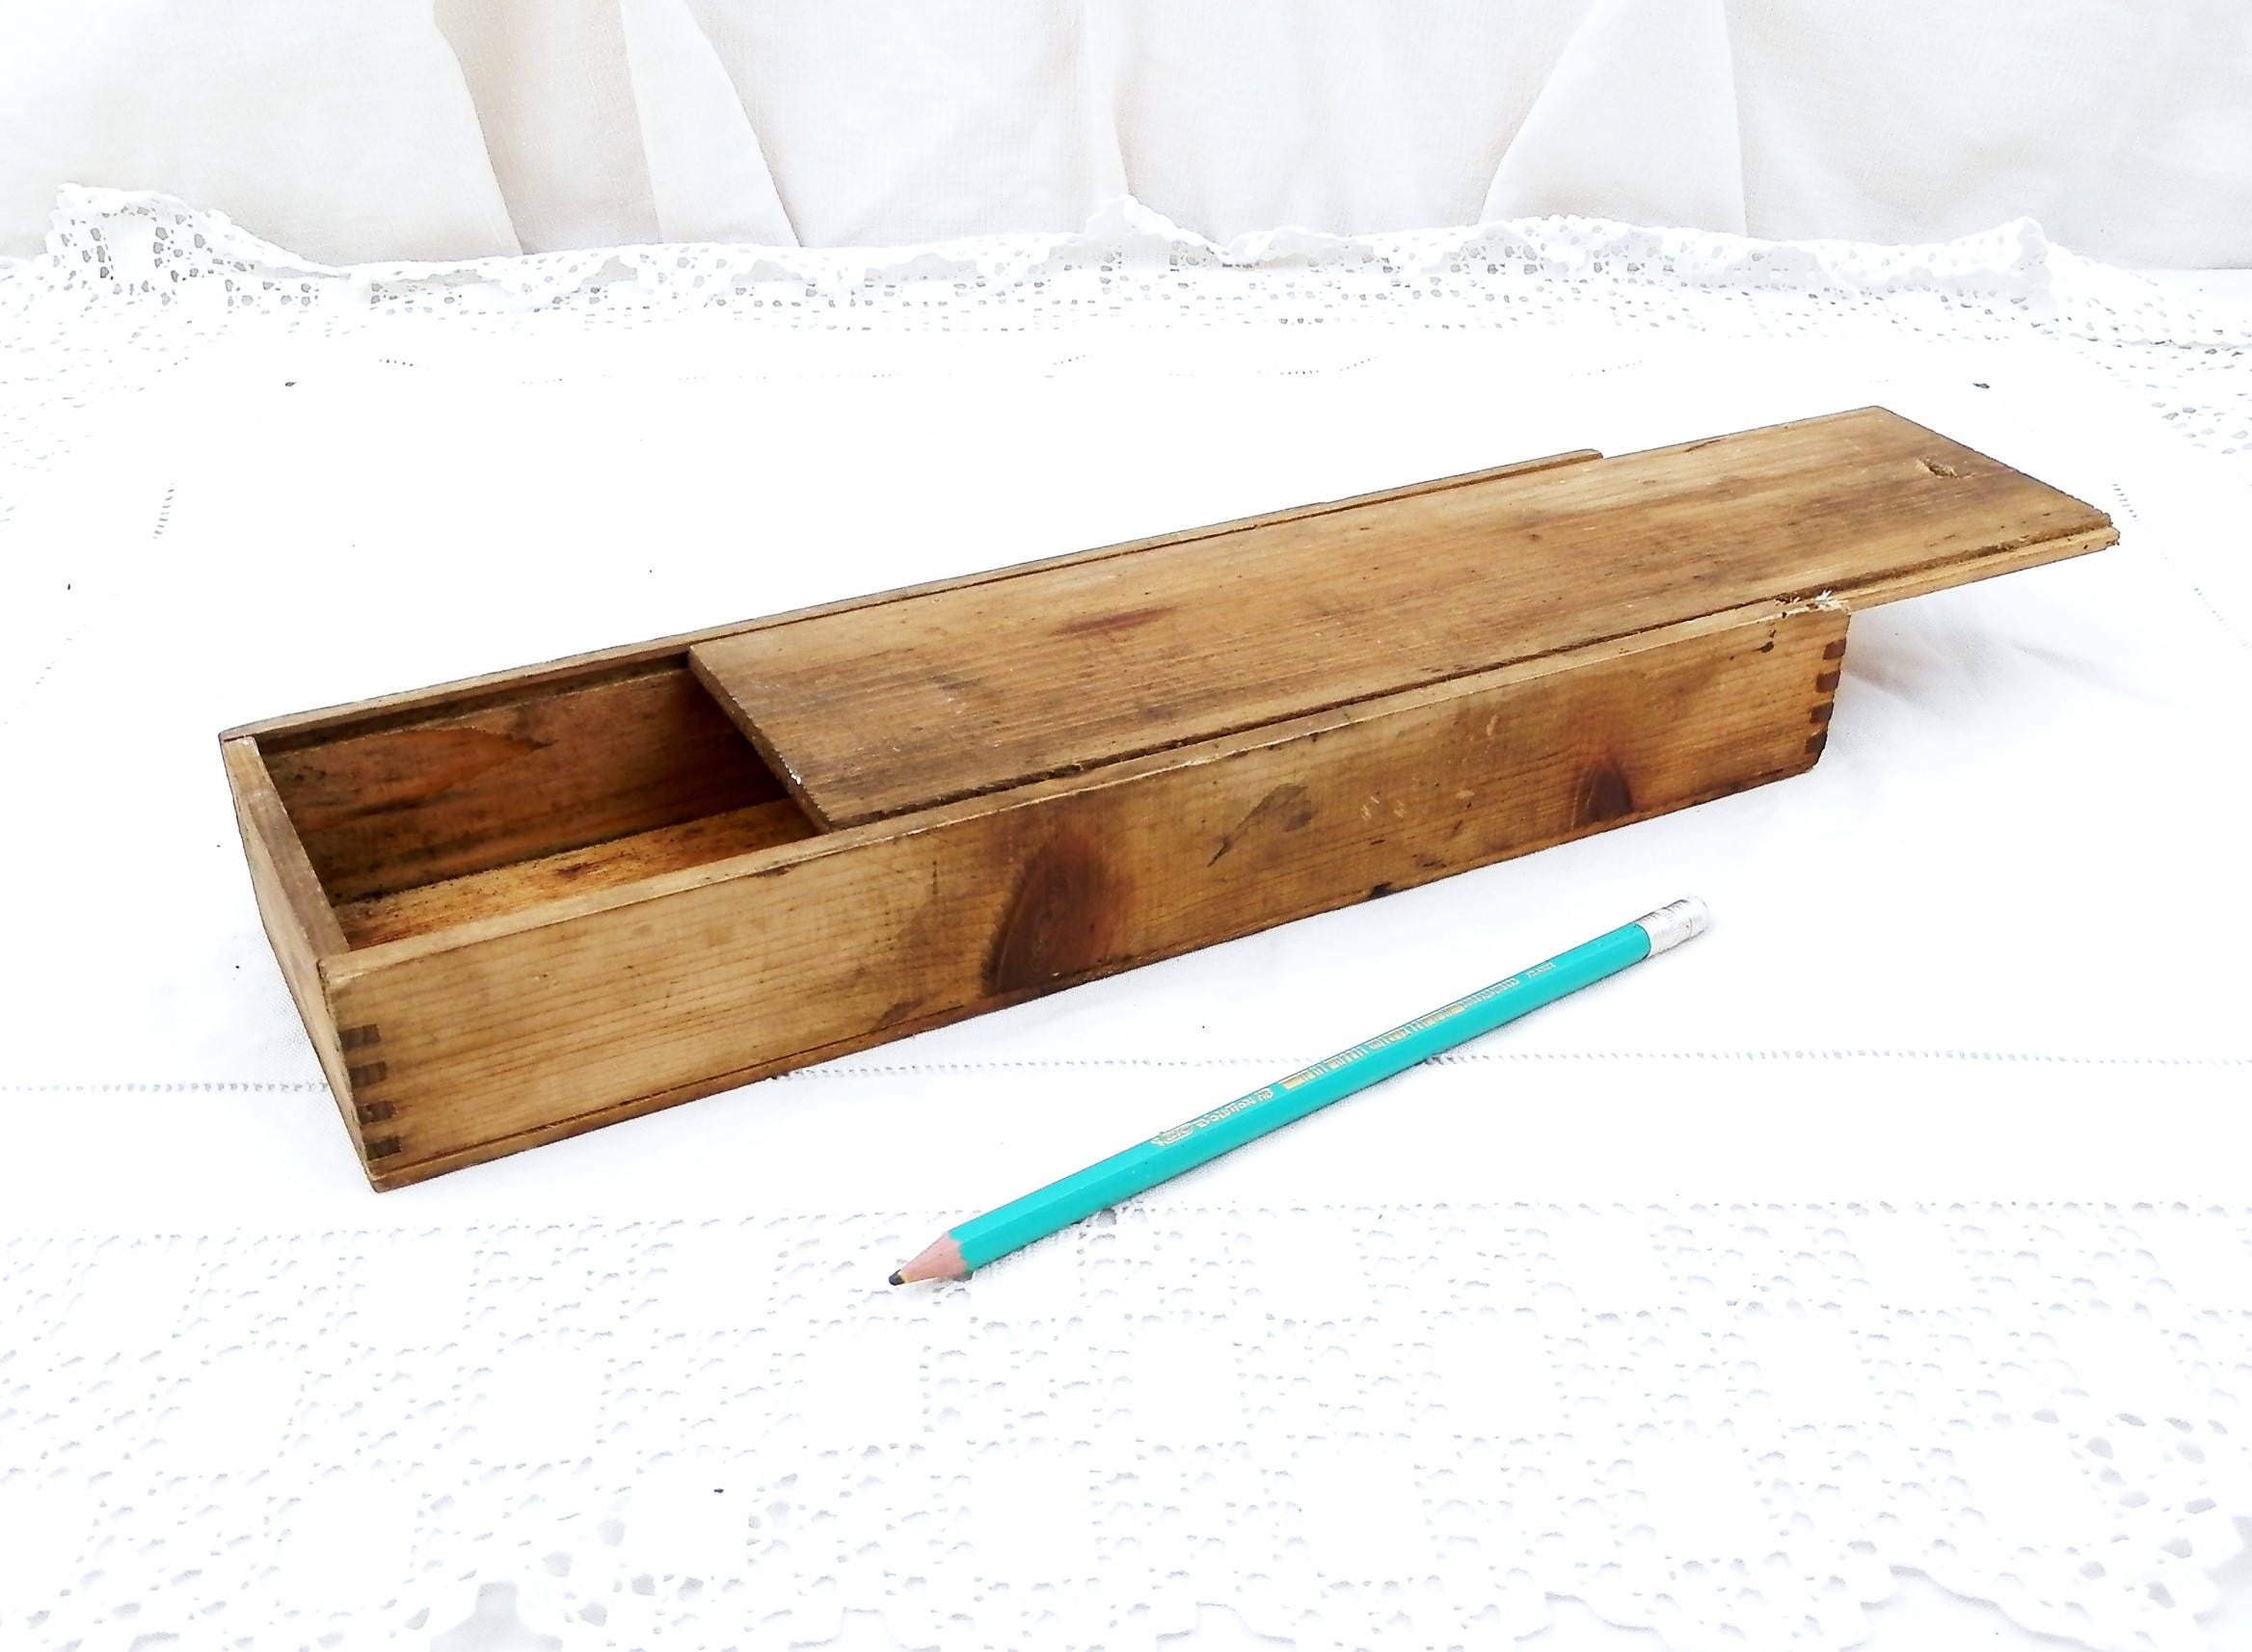 Amazing Antique French Wooden Pencil Box With Sliding Lid, French Country Decor,  Retro, Vintage Desk, Home, Office, School, France, Pupil, Writing